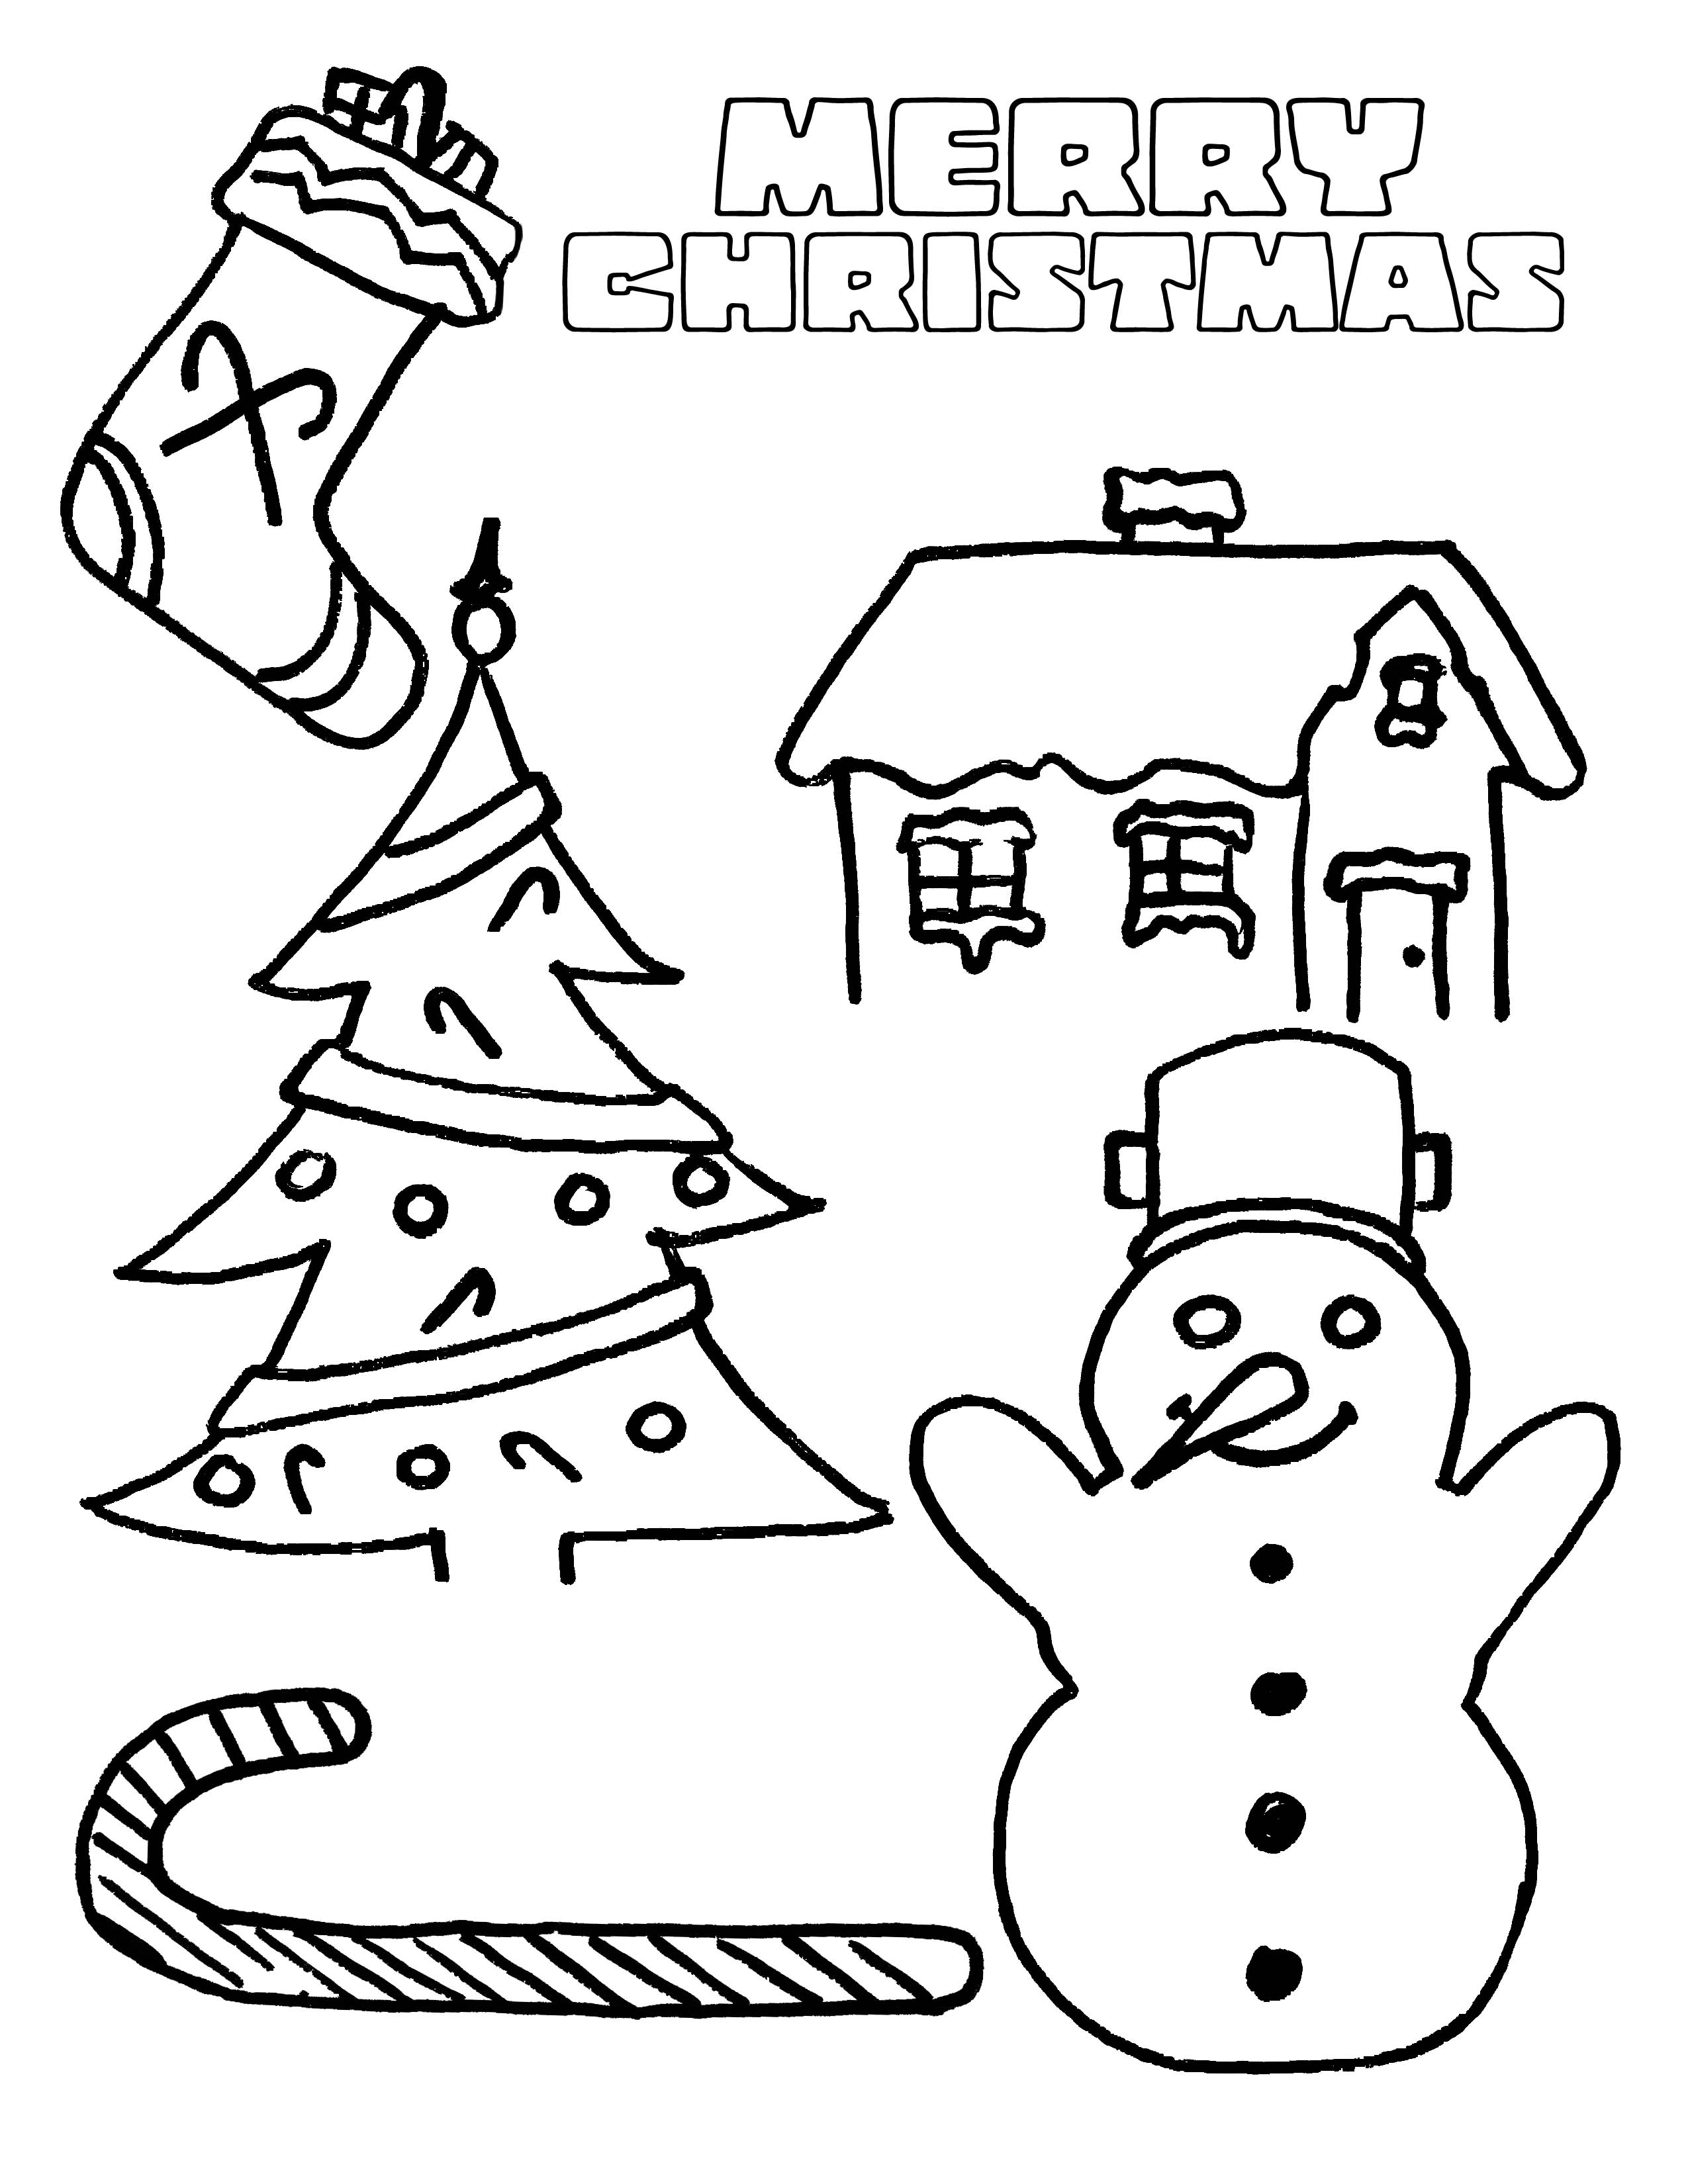 free holiday coloring pages free printable merry christmas coloring pages free holiday coloring pages